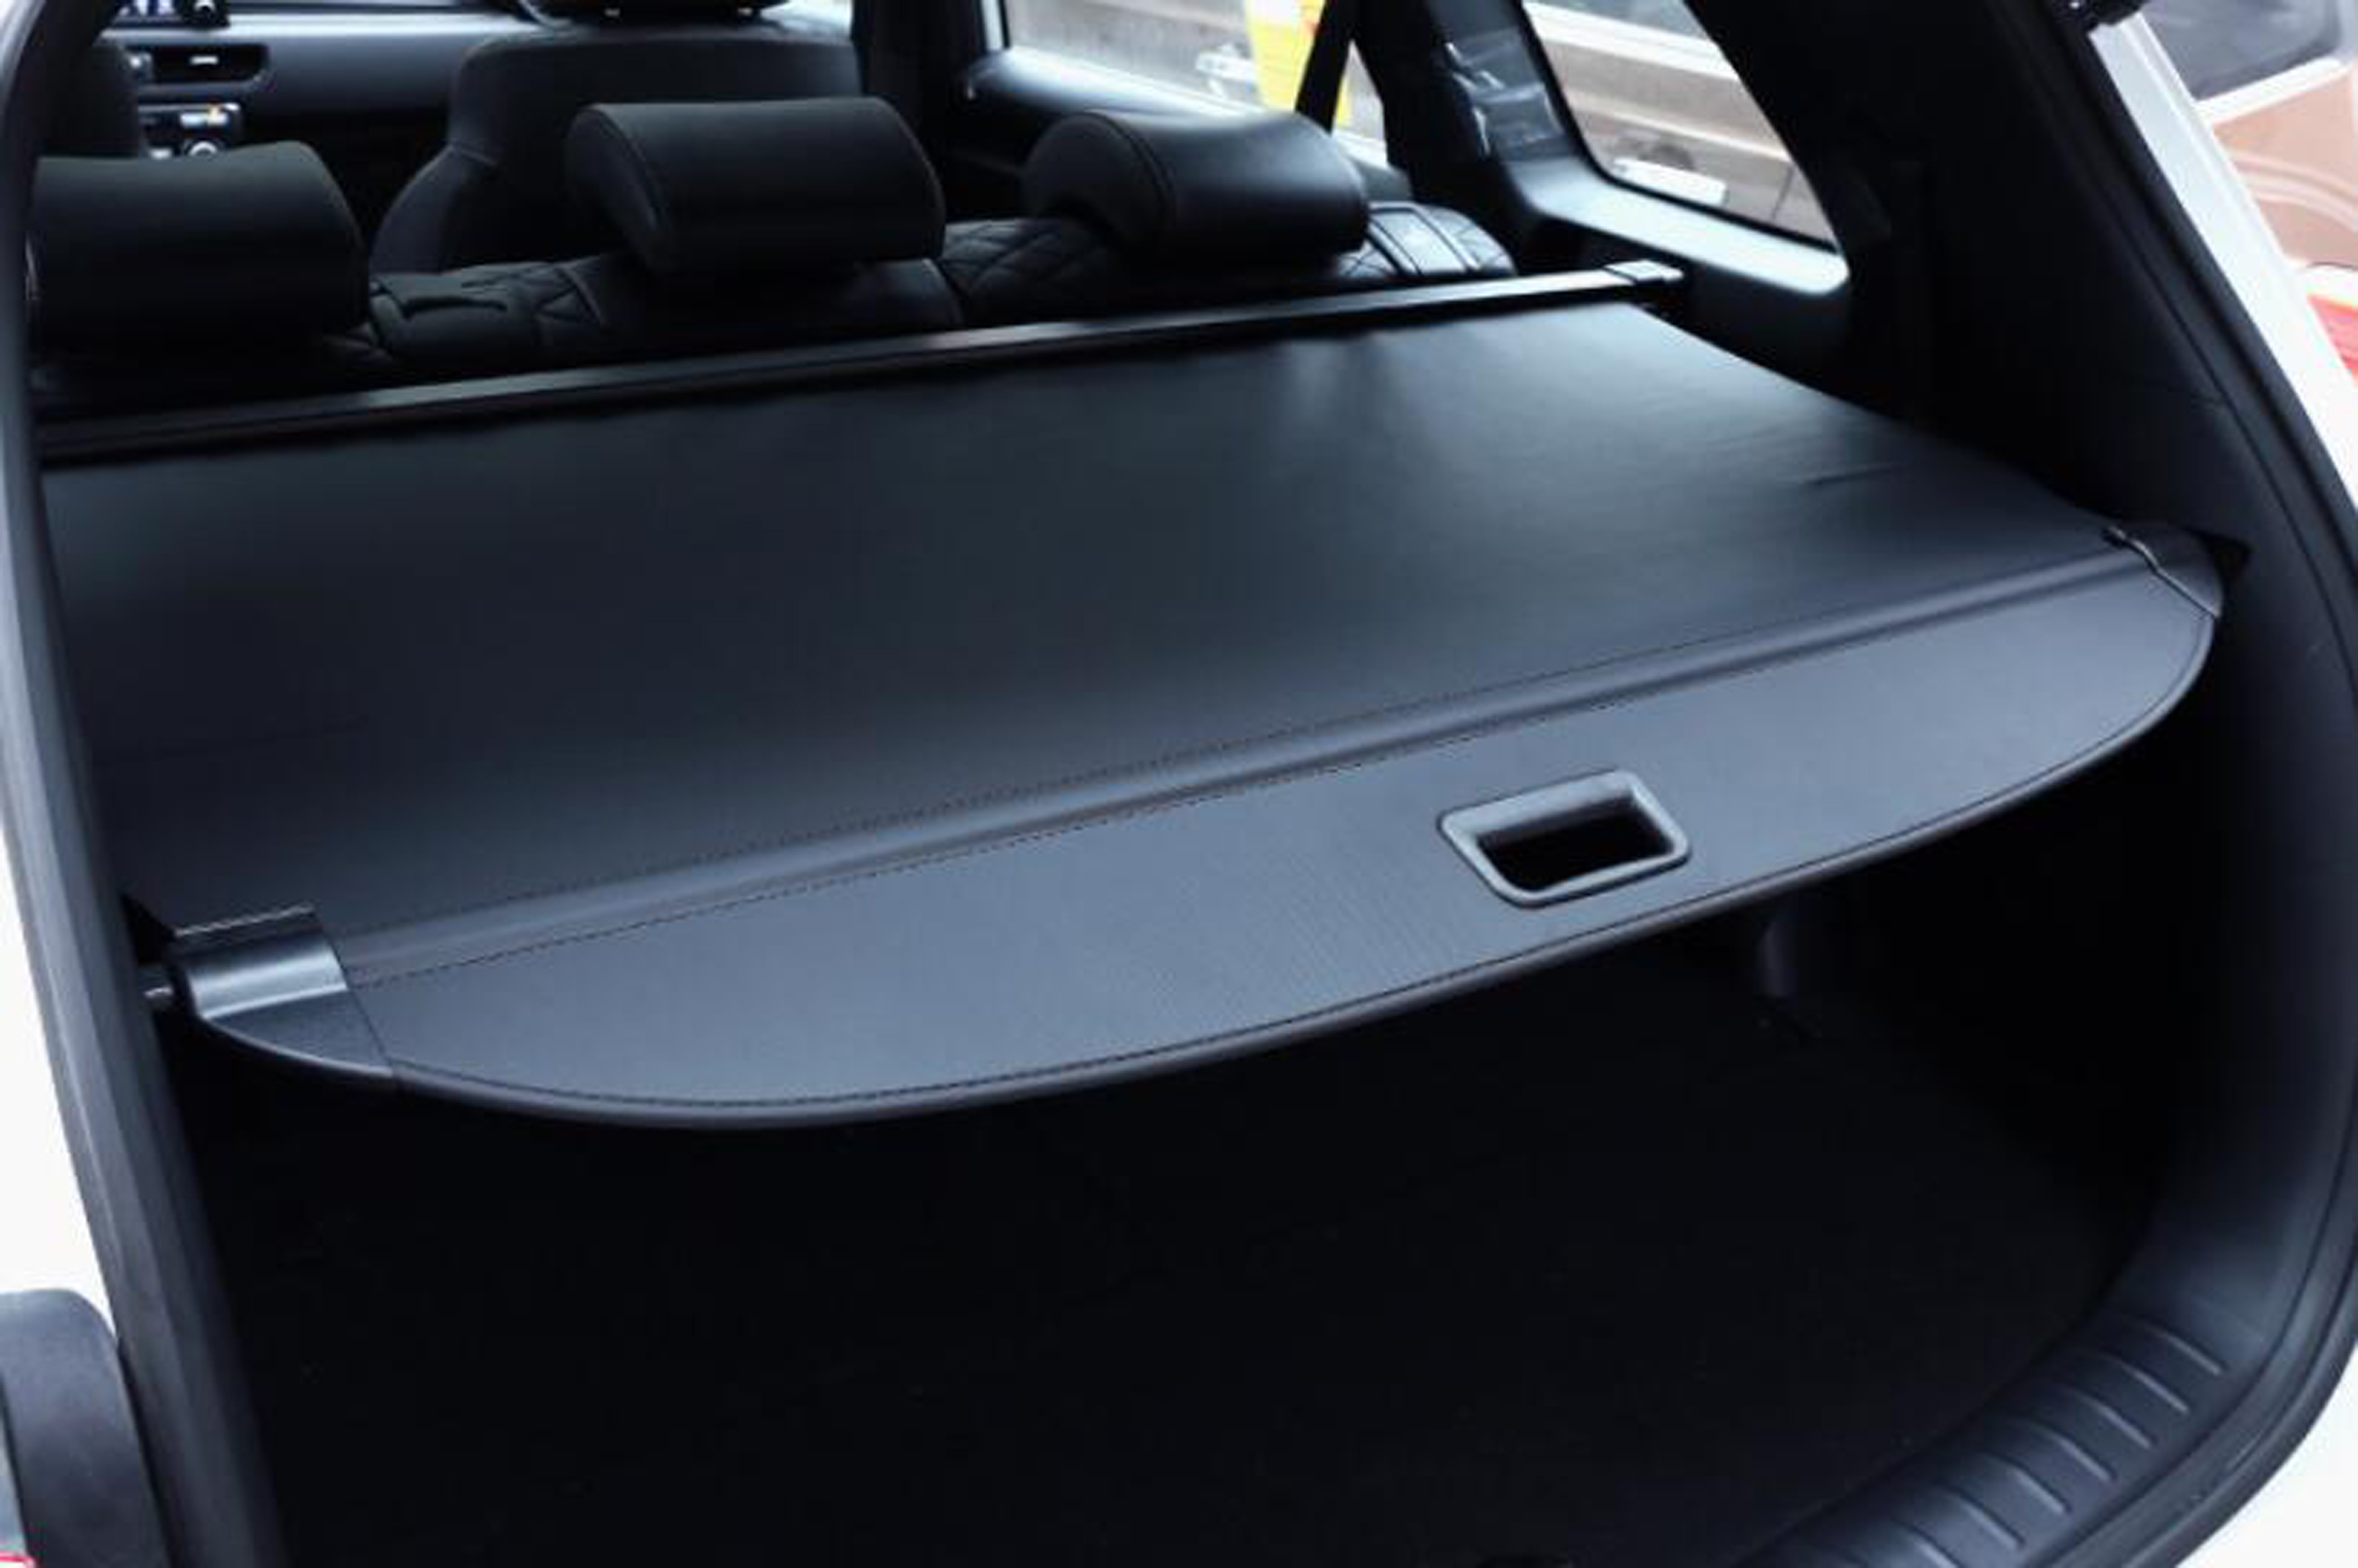 SUV Rear Compartment Curtain